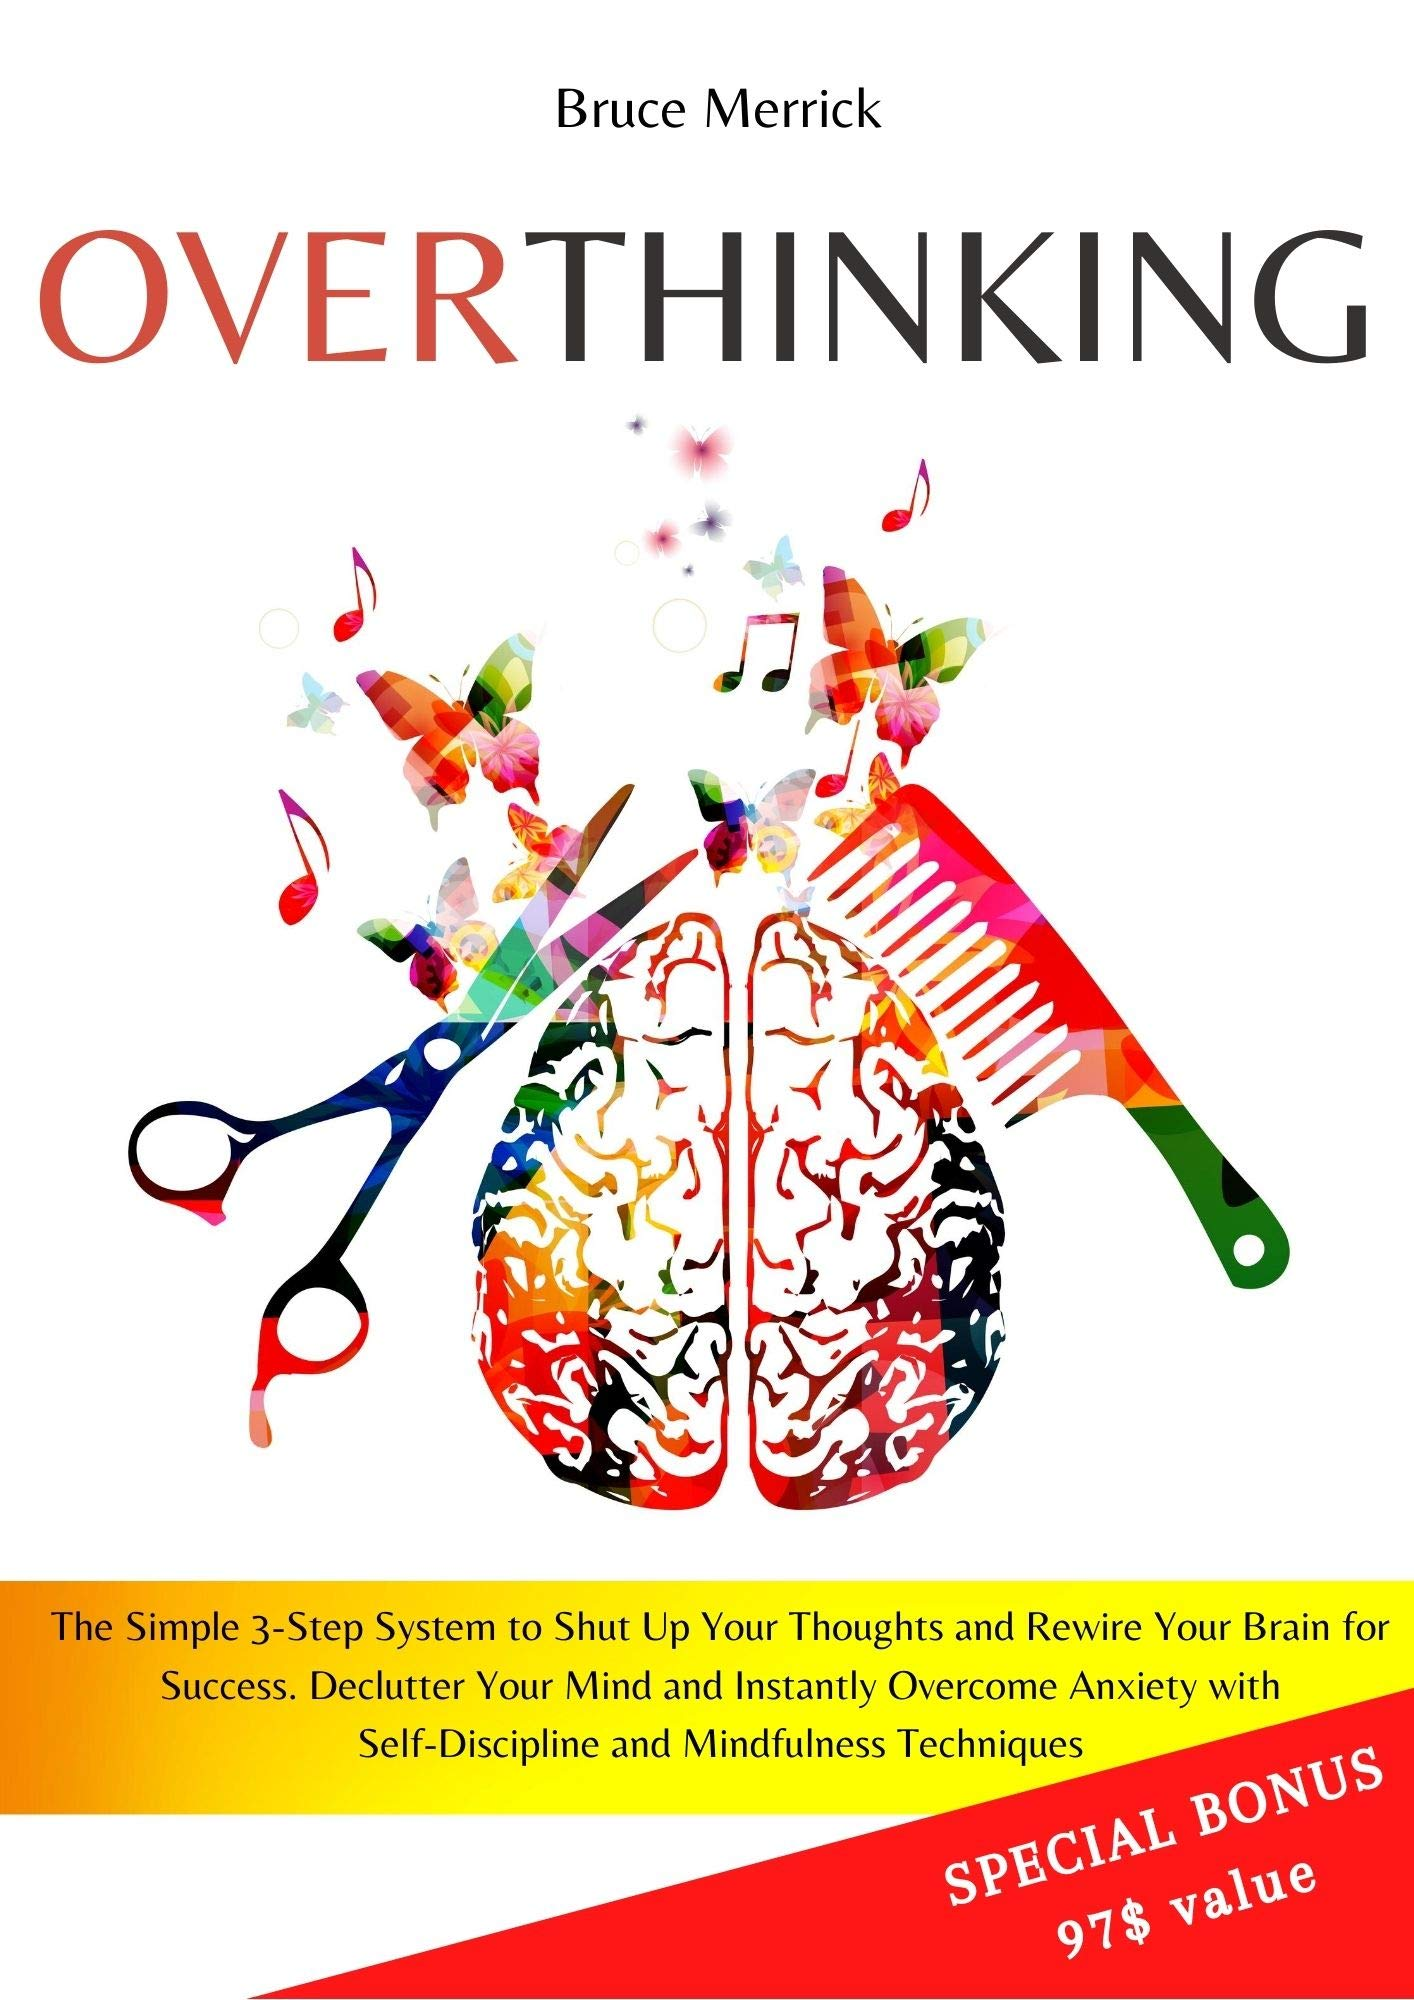 Overthinking: The Simple 3-Step System to Shut Up Your Thoughts and Rewire Your Brain for Success. Declutter Your Mind and Instantly Overcome Anxiety with Self-Discipline and Mindfulness Techniques